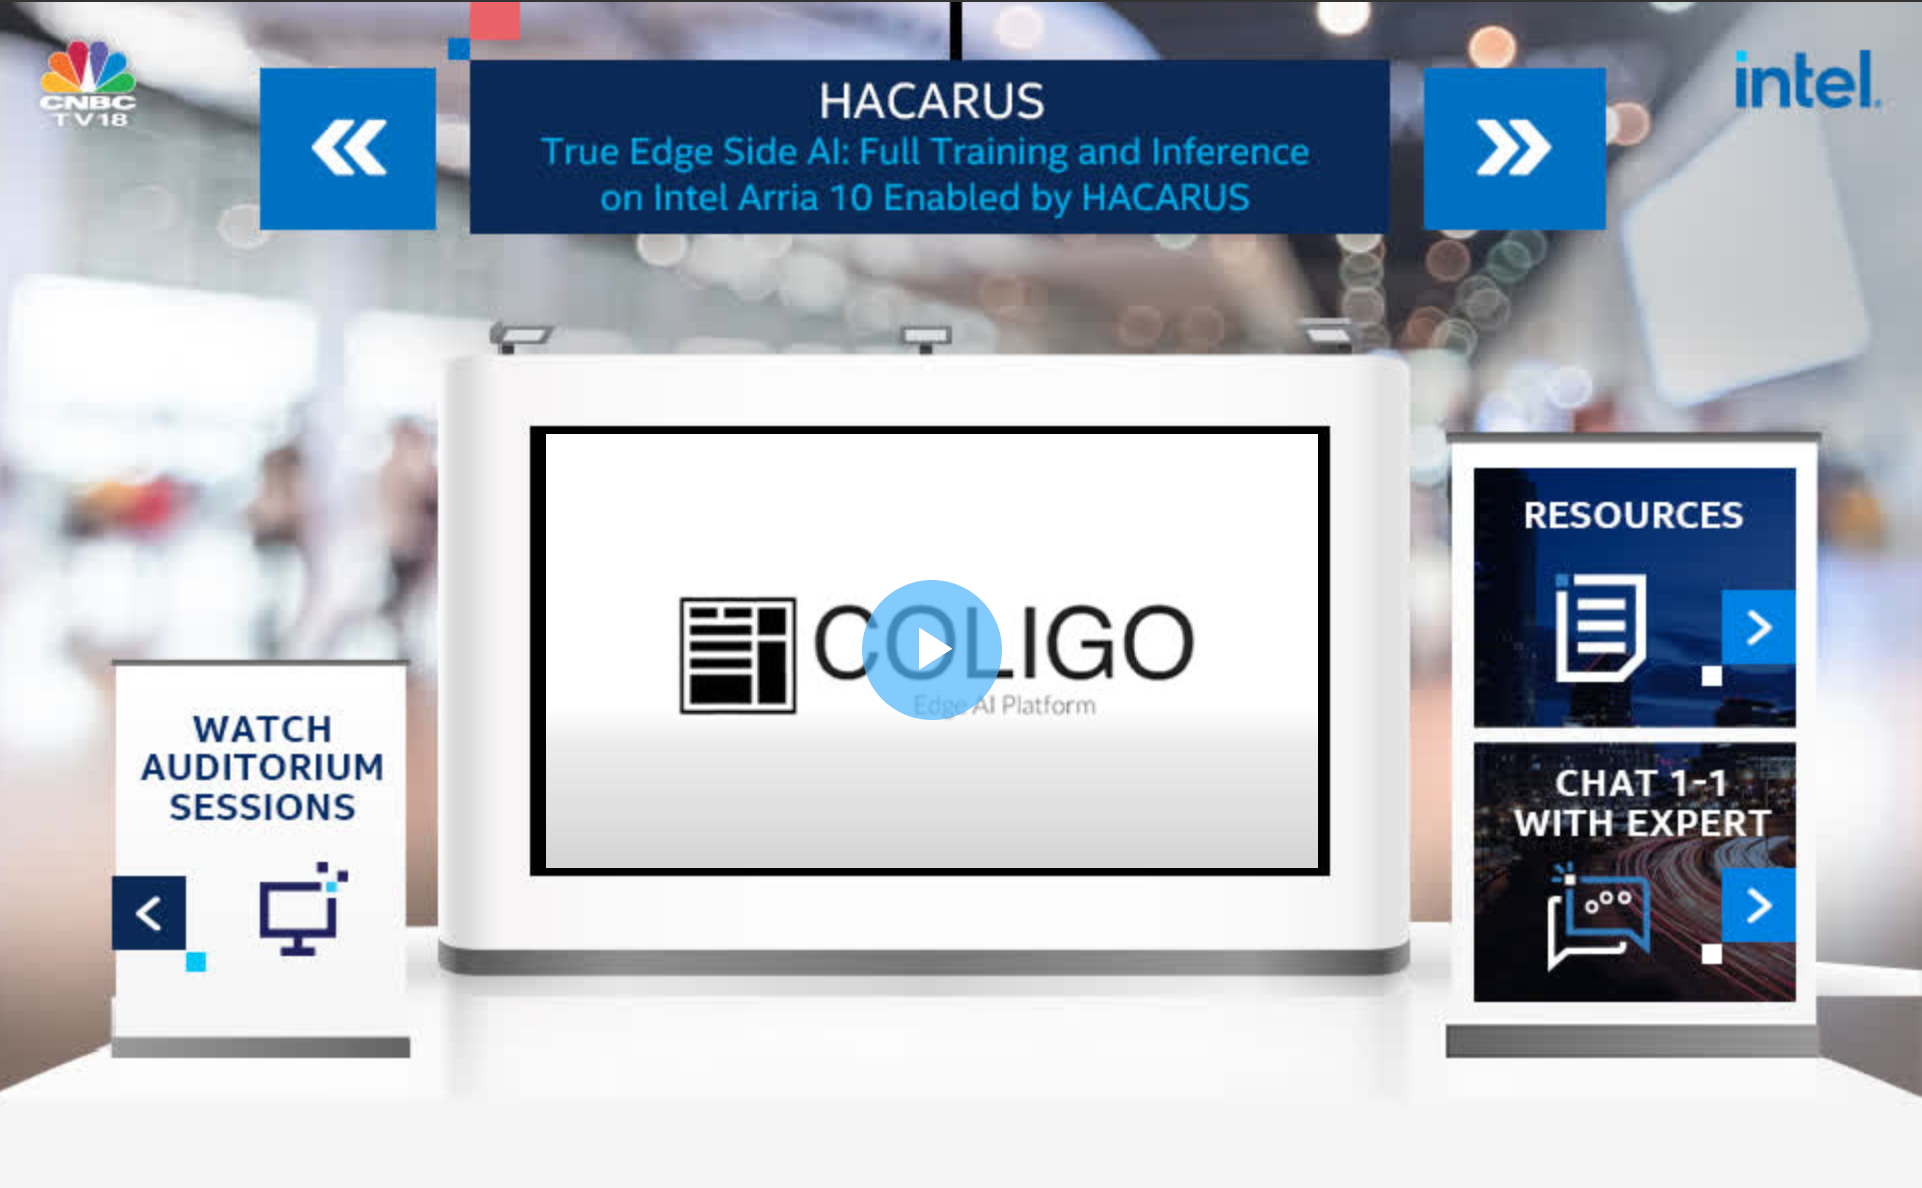 HACARUS Exhibits At Event By Intel